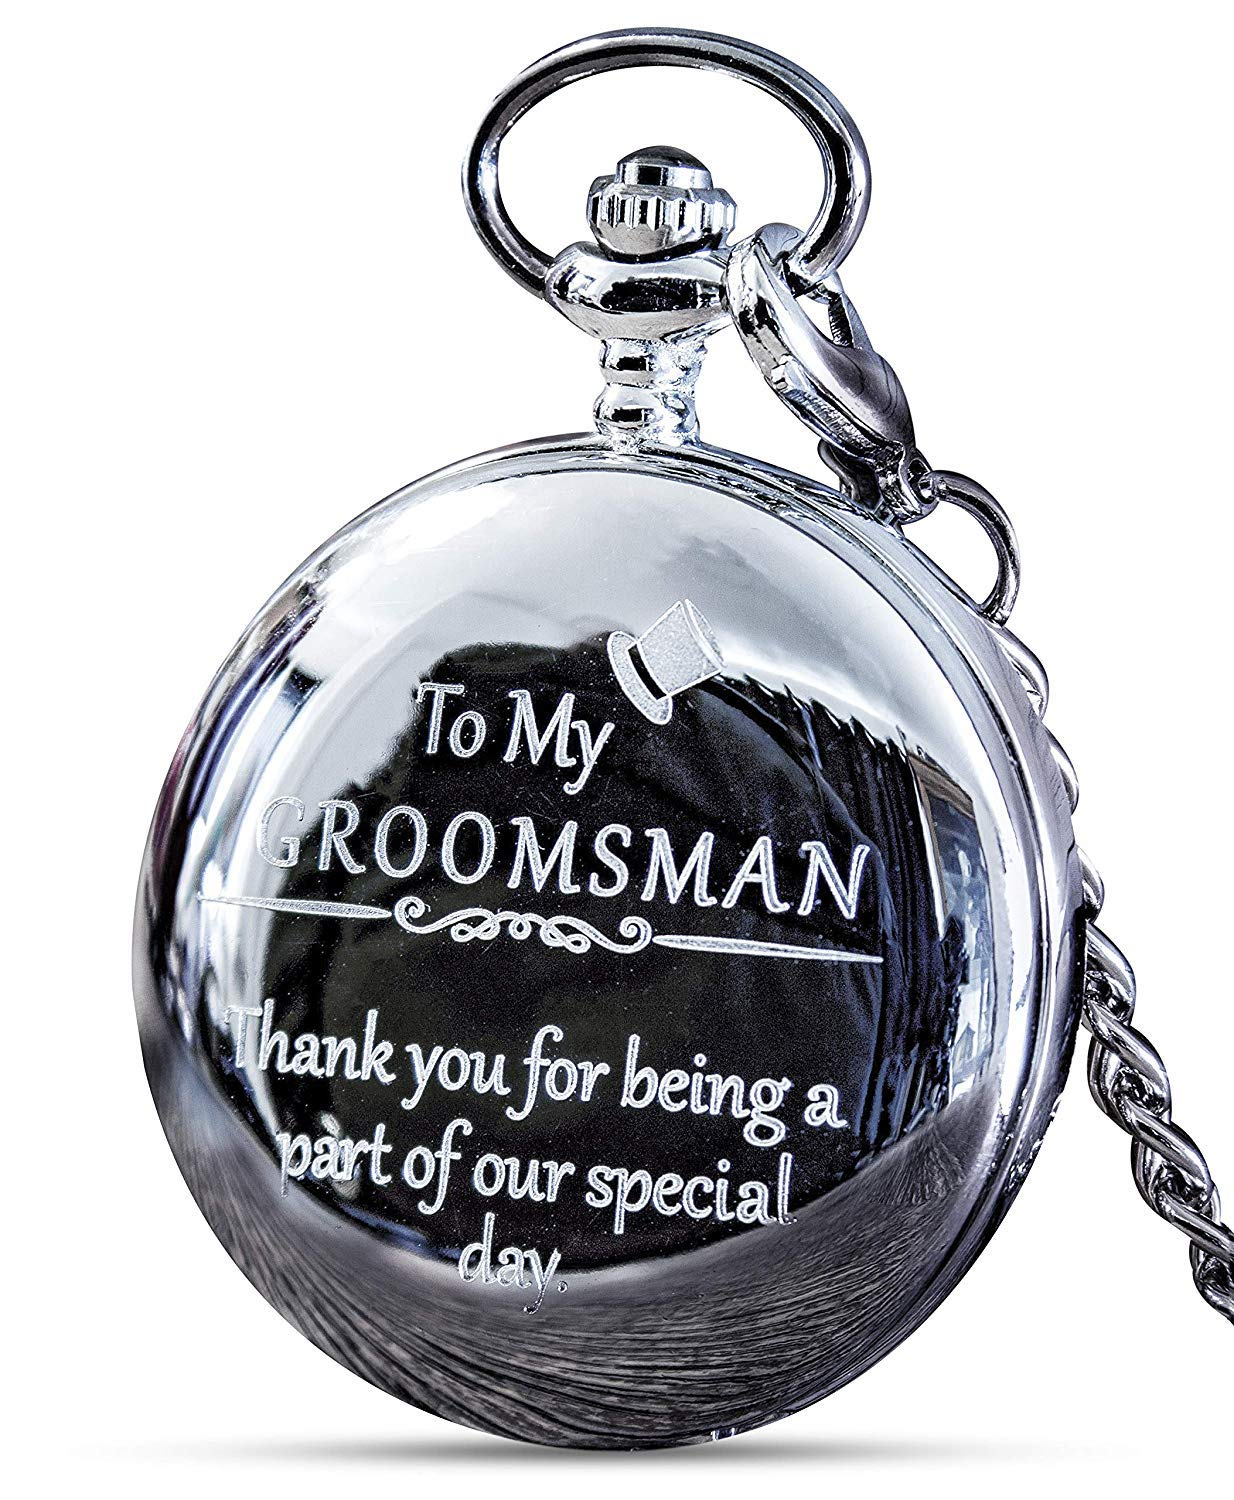 Groomsmen Gifts for Wedding or Proposal - Engraved Groomsman Pocket Watch - 5 Set - Luxury Wedding Gift by FREDERICK JAMES